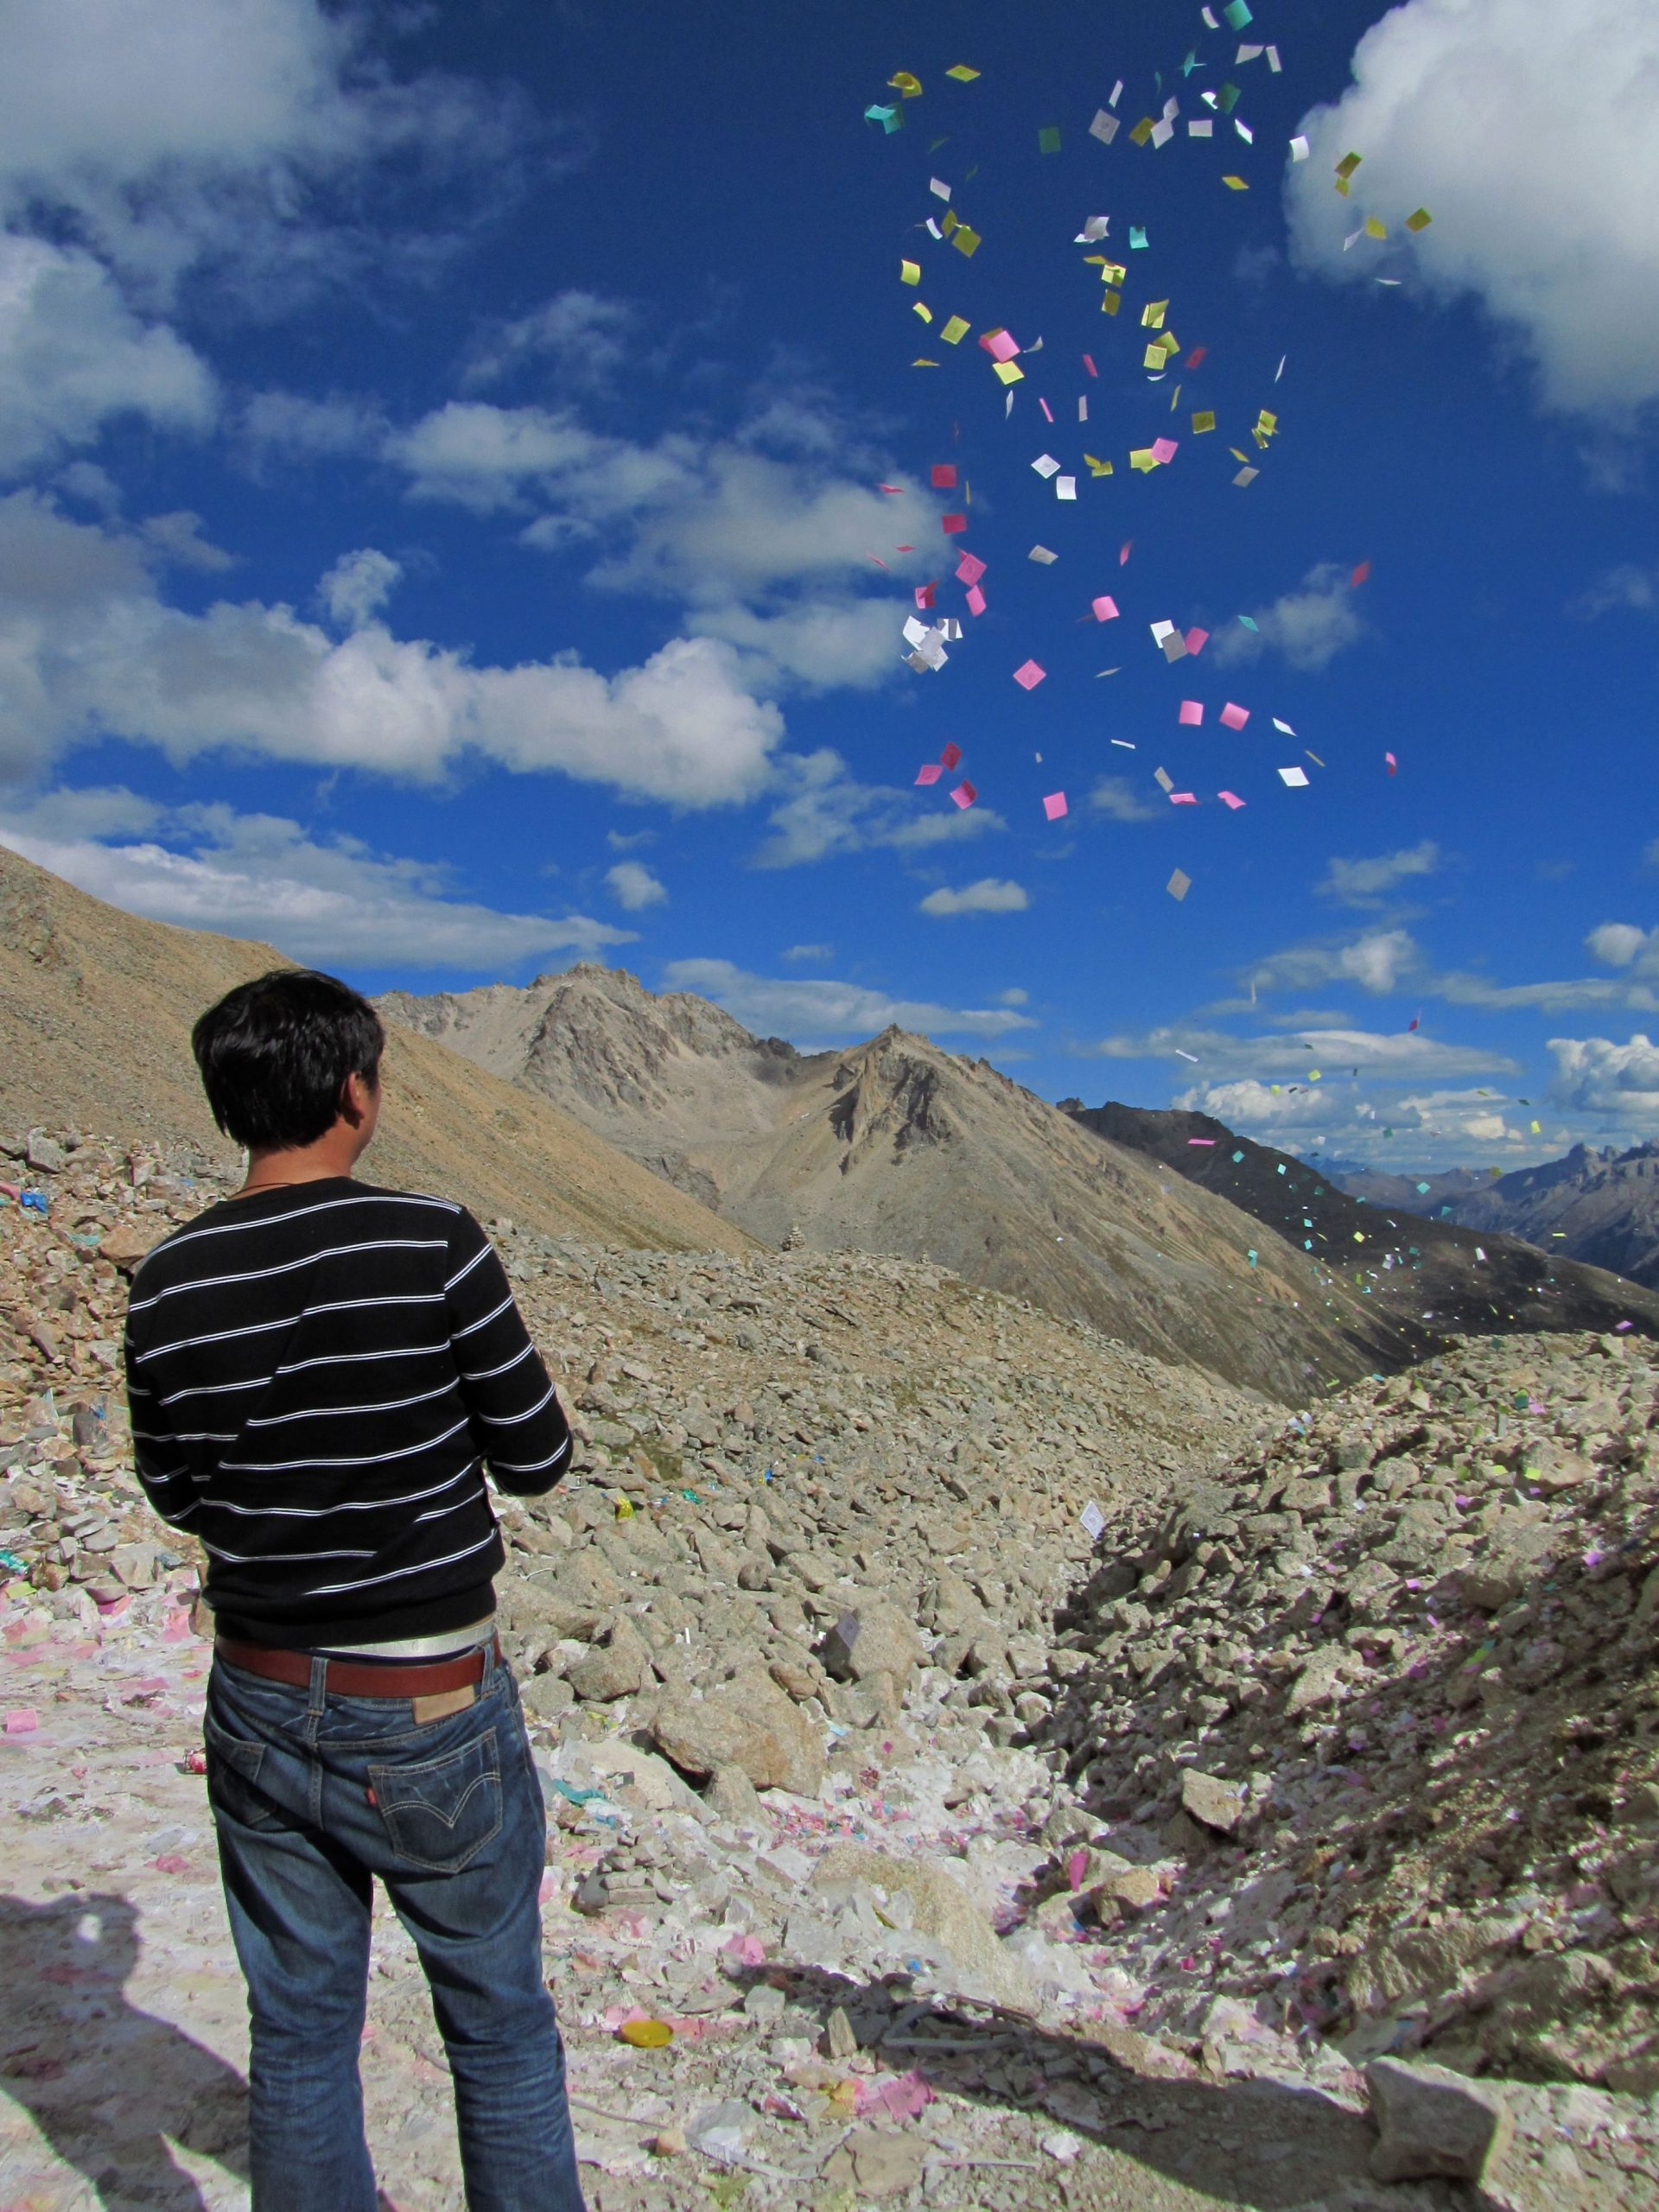 Releasing prayer slips at Chola pass, Kham